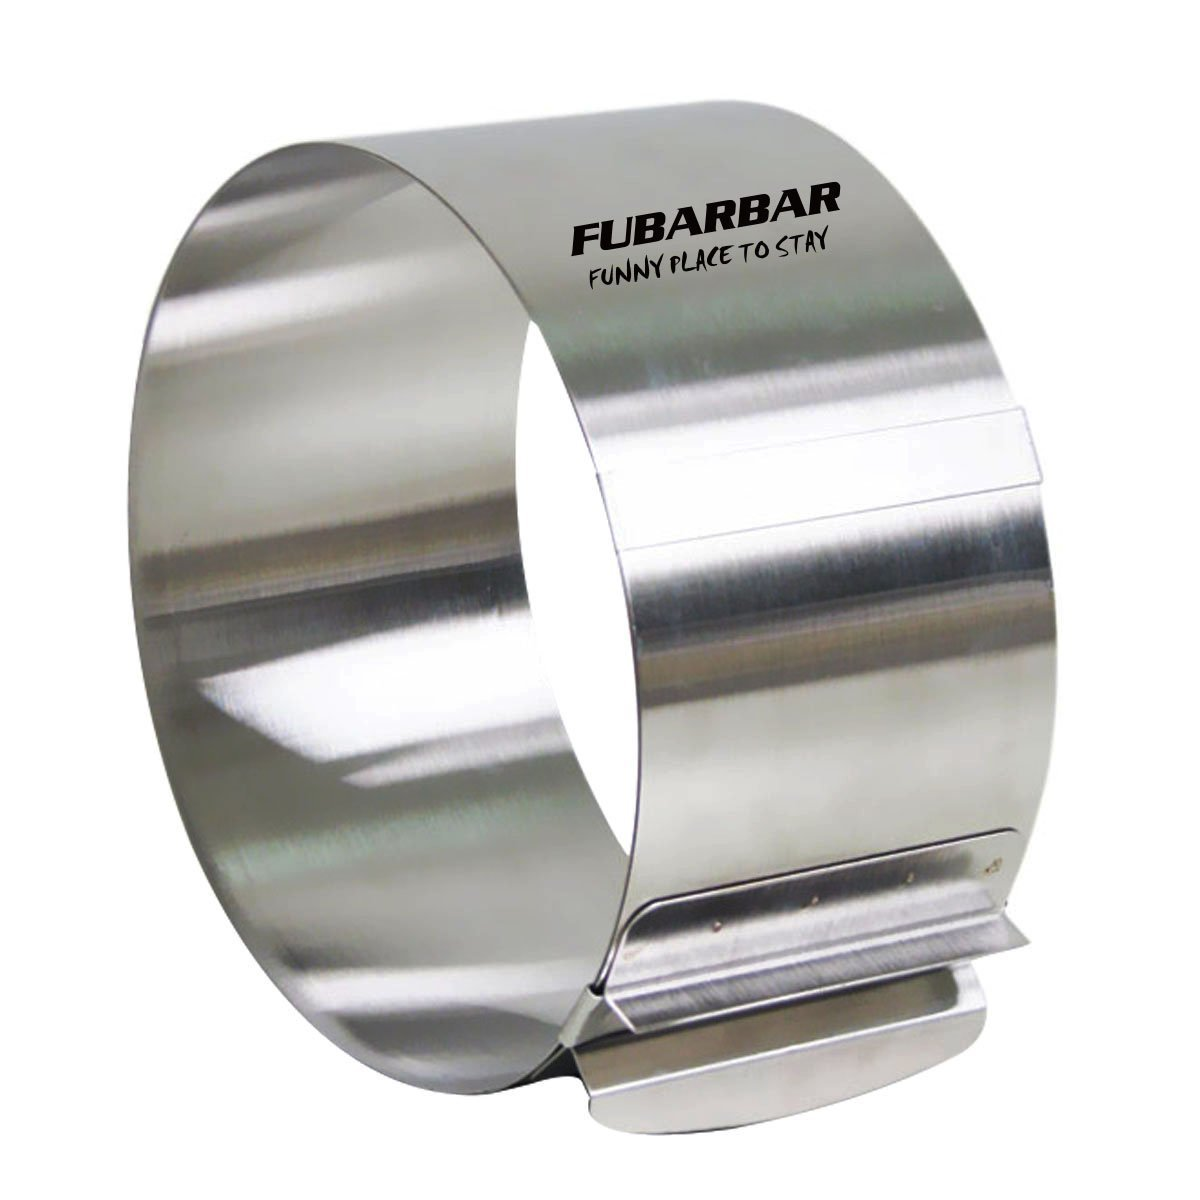 FUBARBAR Cake Ring Cutter Mold Decorating Pastry Ring with Pusher 3 X 2 Inch Stainless Steel Assorted Shape (Round 6